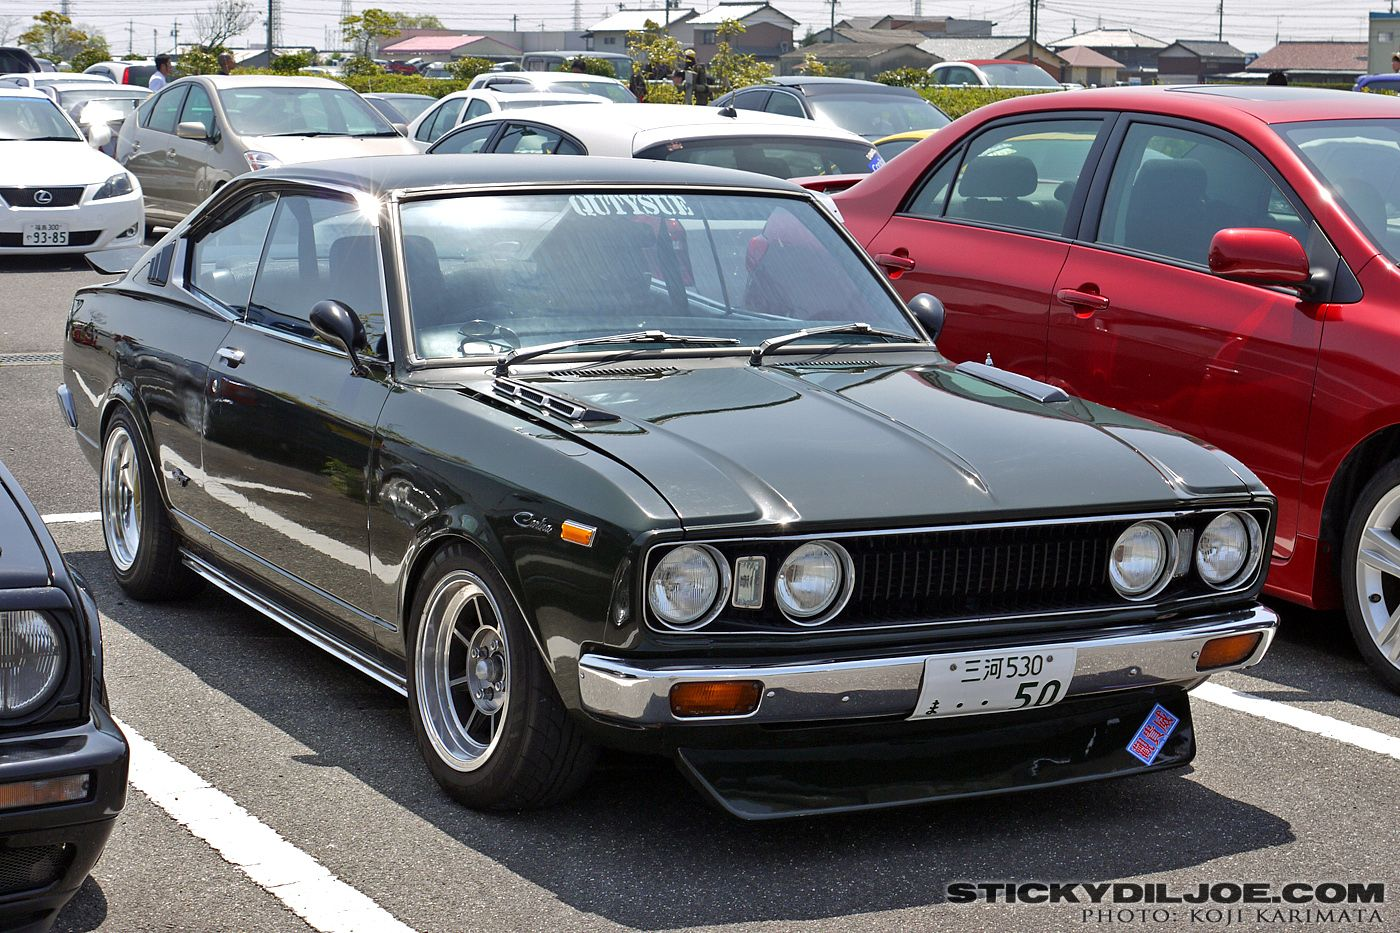 Toyota carina coupe didnt know there was this beautiful toyota toyota carina coupe didnt know there was this beautiful toyota model publicscrutiny Image collections